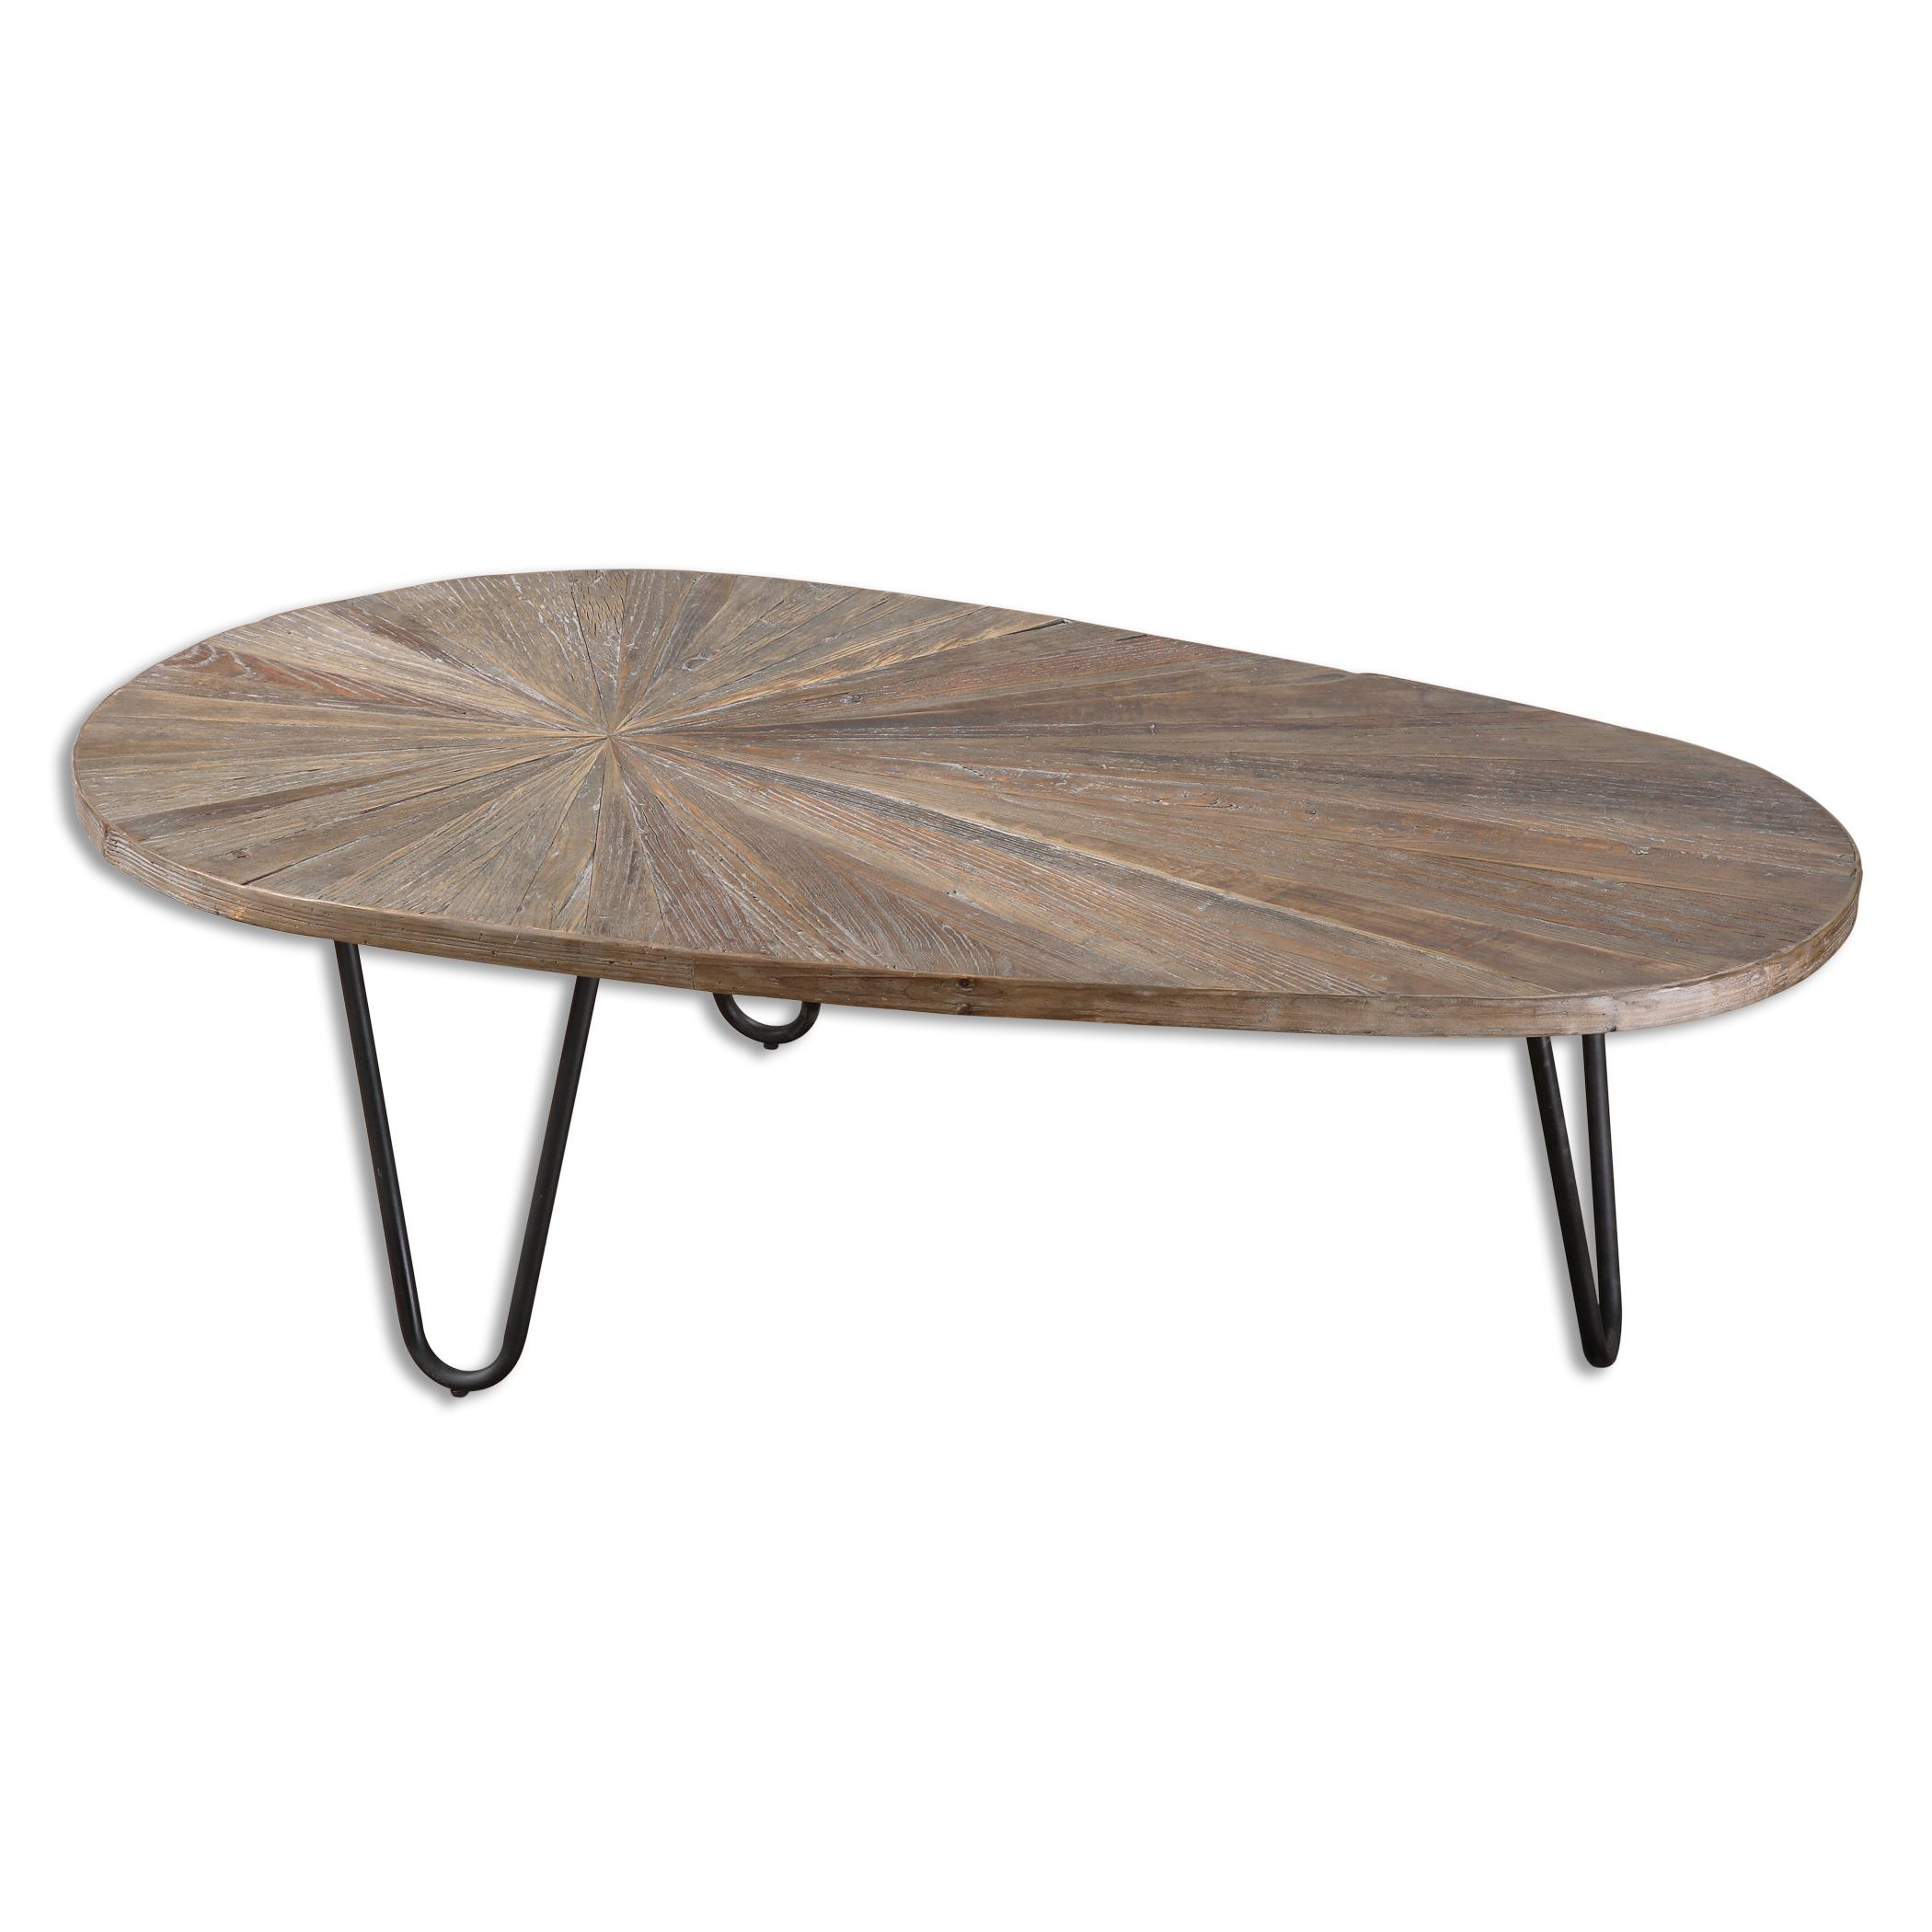 Accent Furniture - Occasional Tables Leveni Wooden Coffee Table by Uttermost at Goffena Furniture & Mattress Center